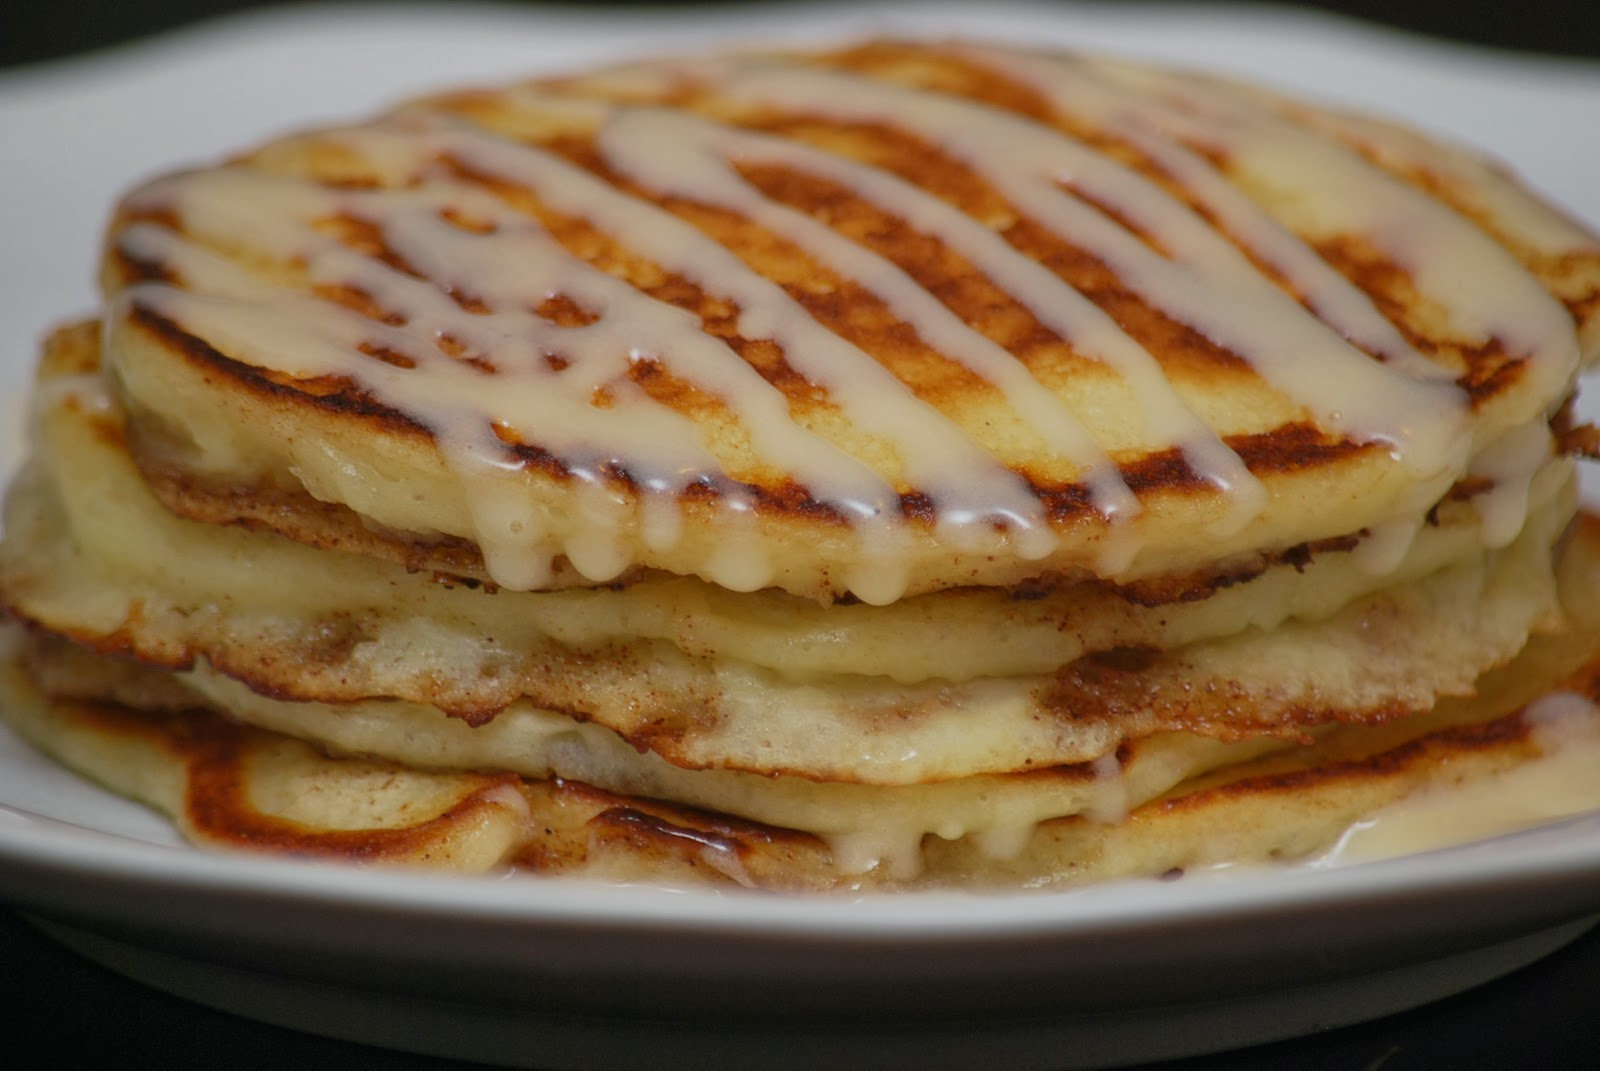 My story in recipes: Cinnamon Roll Pancakes